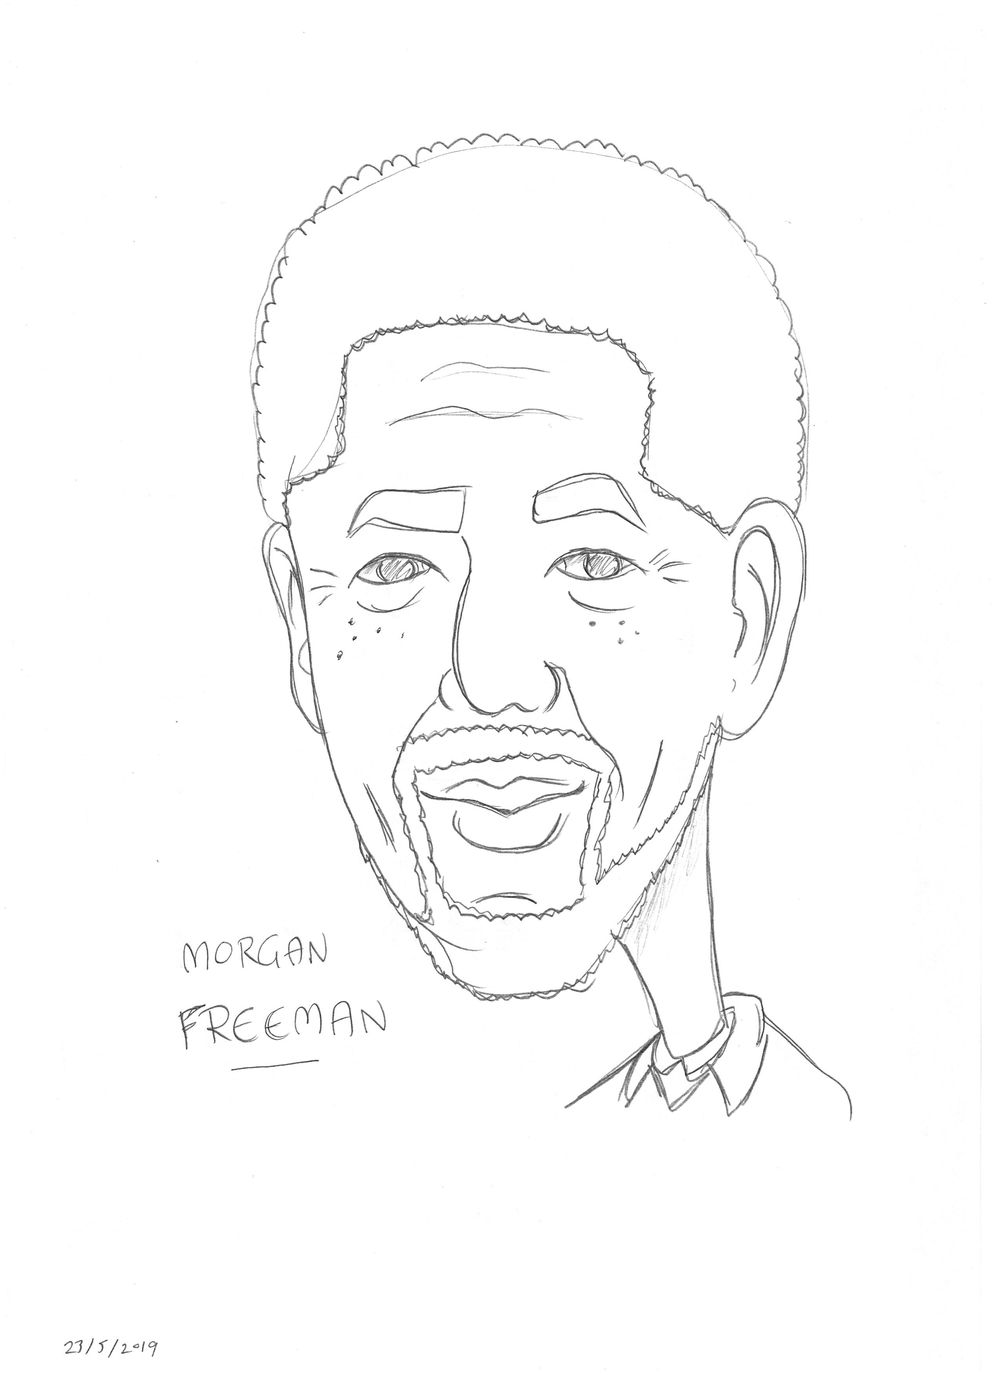 Pencil Caricatures - image 2 - student project